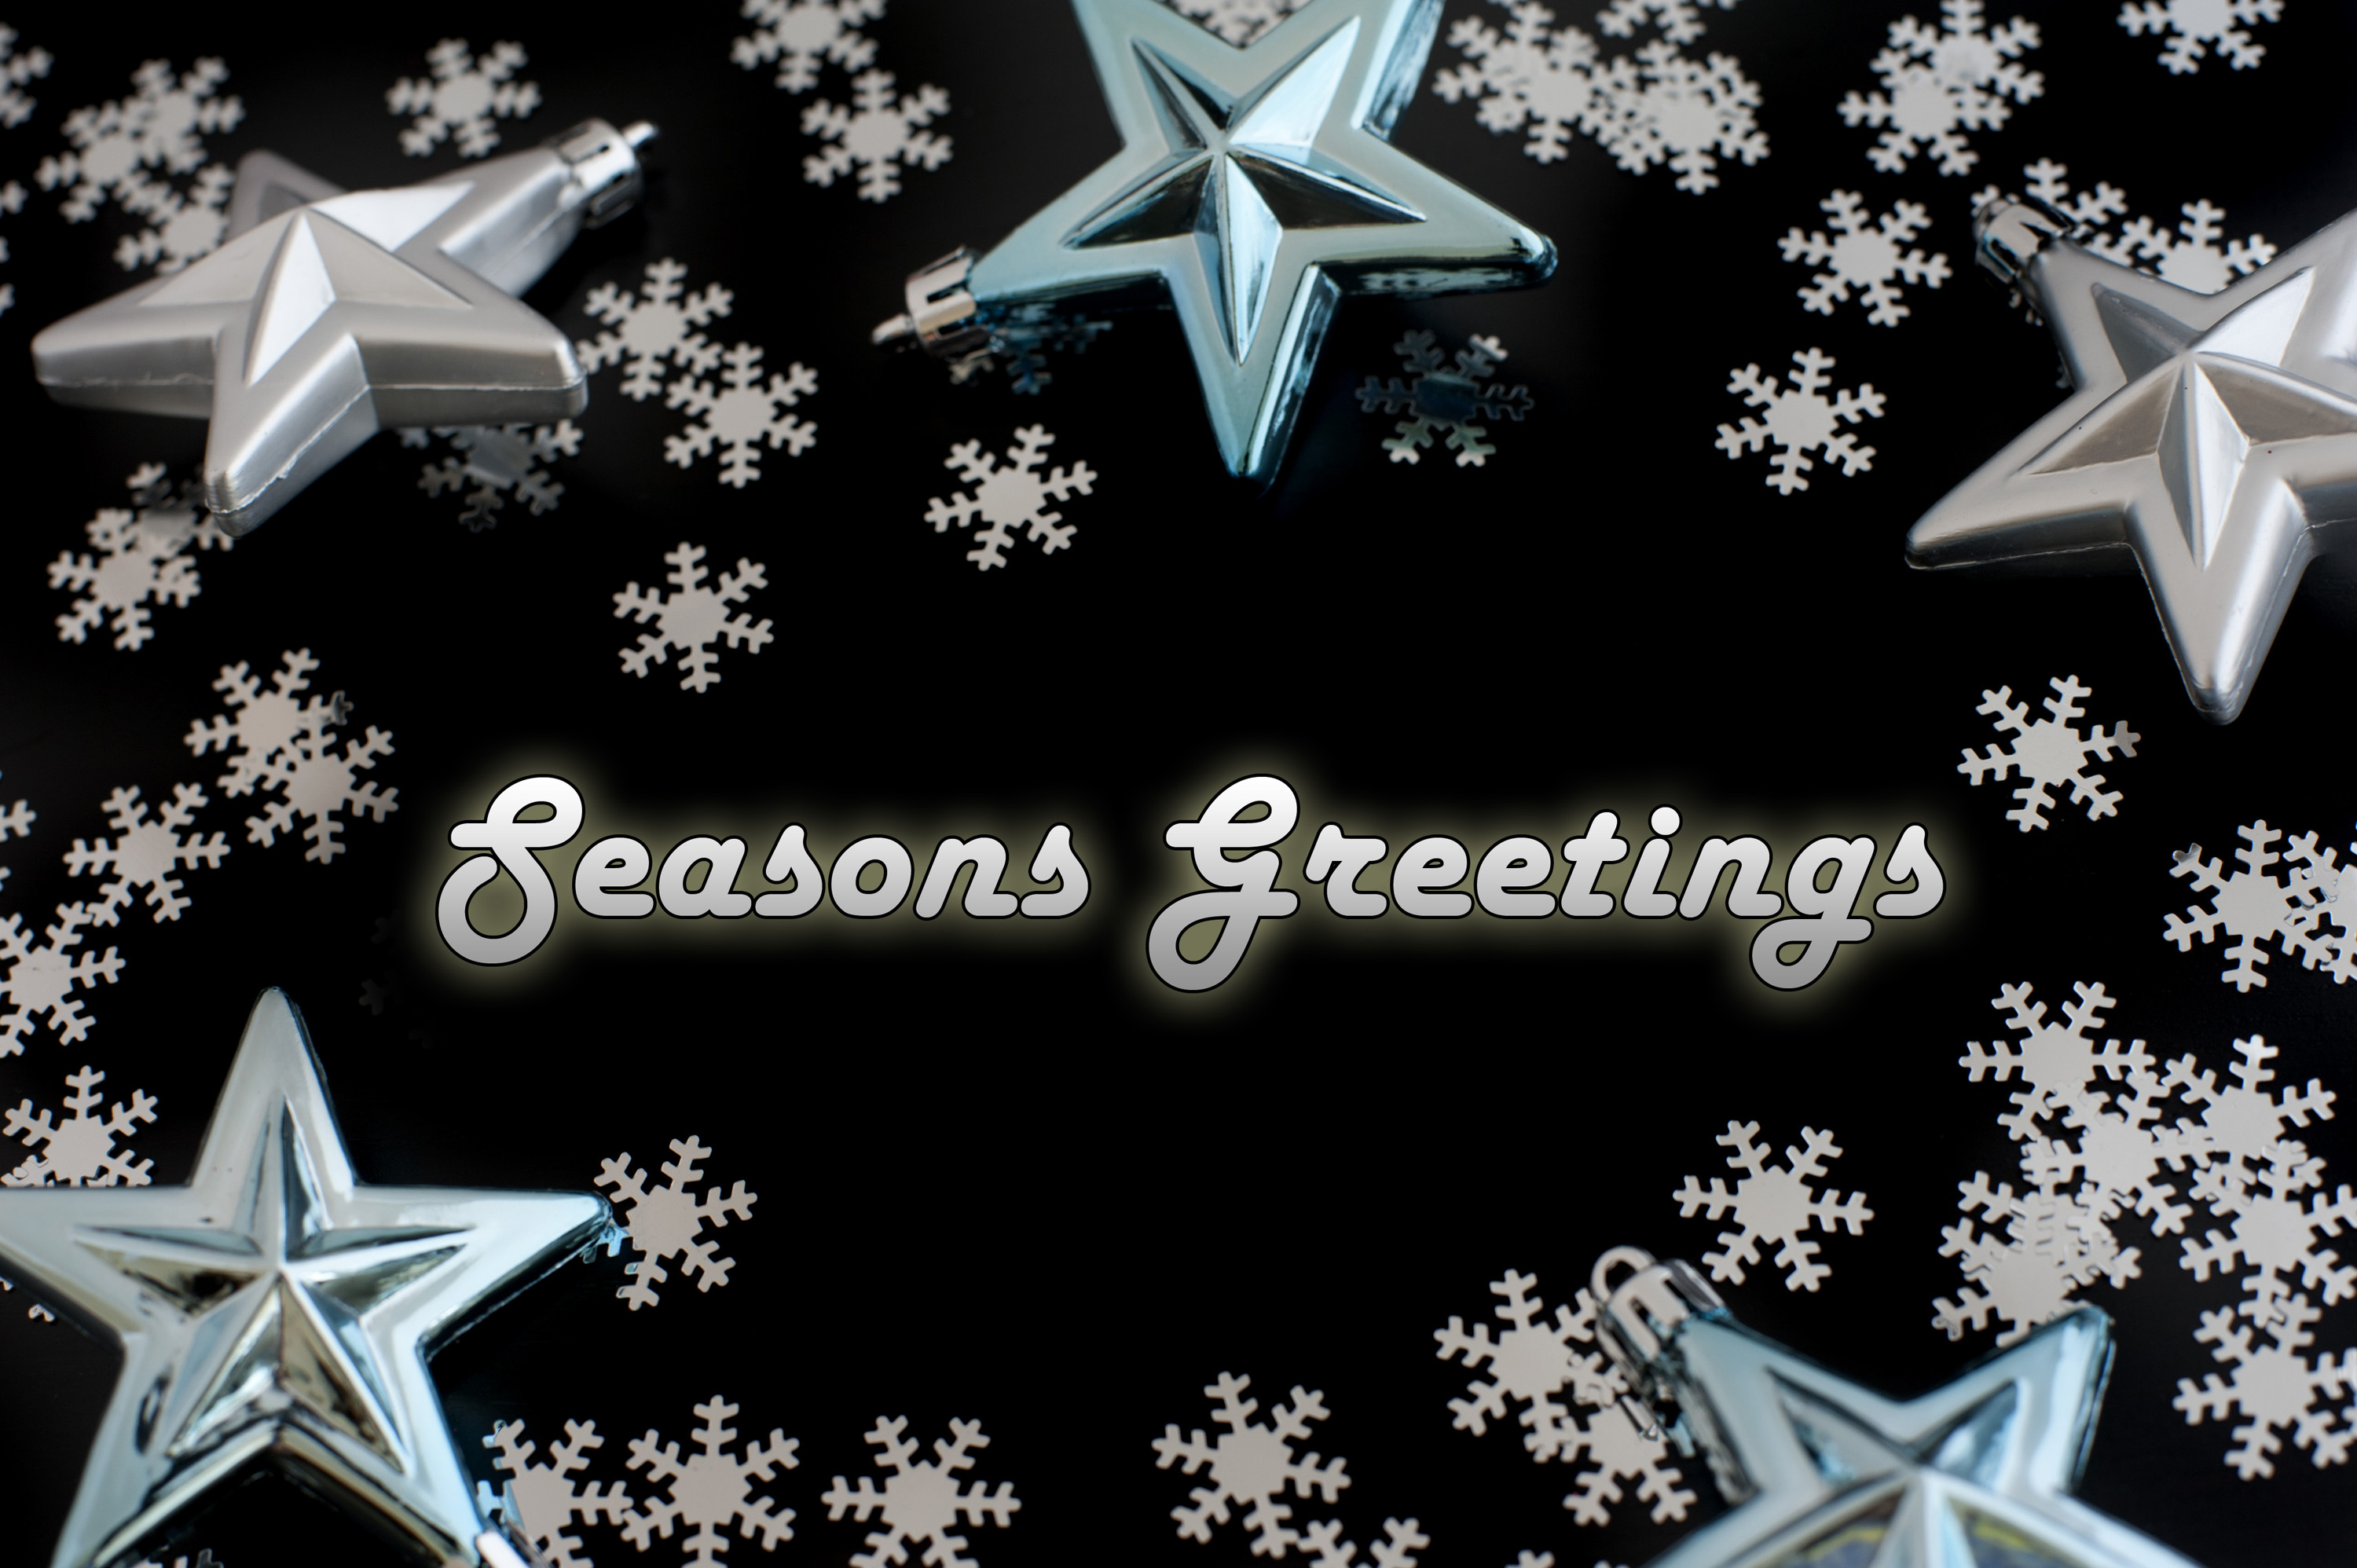 Photo of seasons greetings card free christmas images seasons greetings card with glowing text surrounded by snowflakes and stars on a black background m4hsunfo